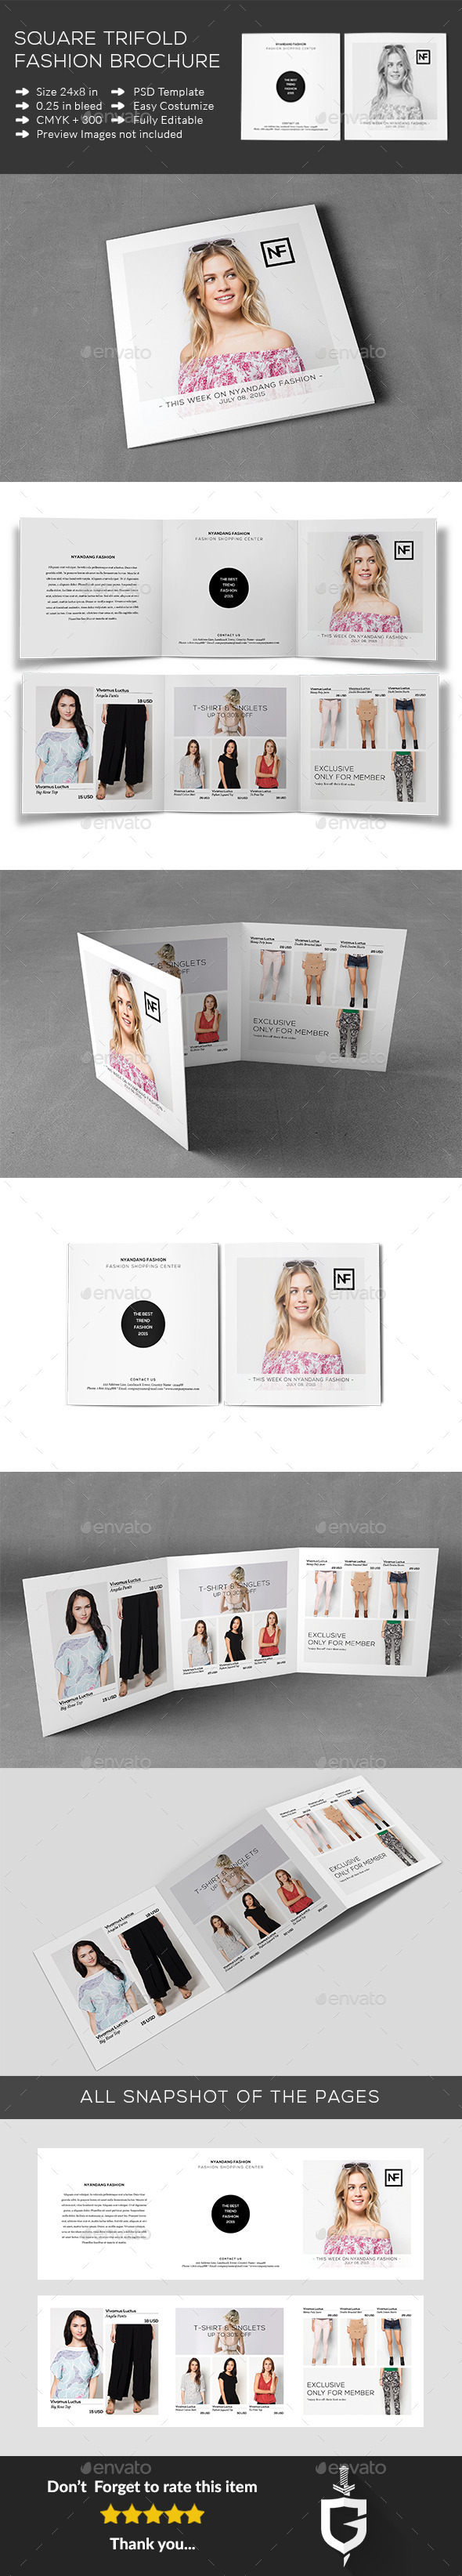 Square Trifold Fashion Brochure - Catalogs Brochures